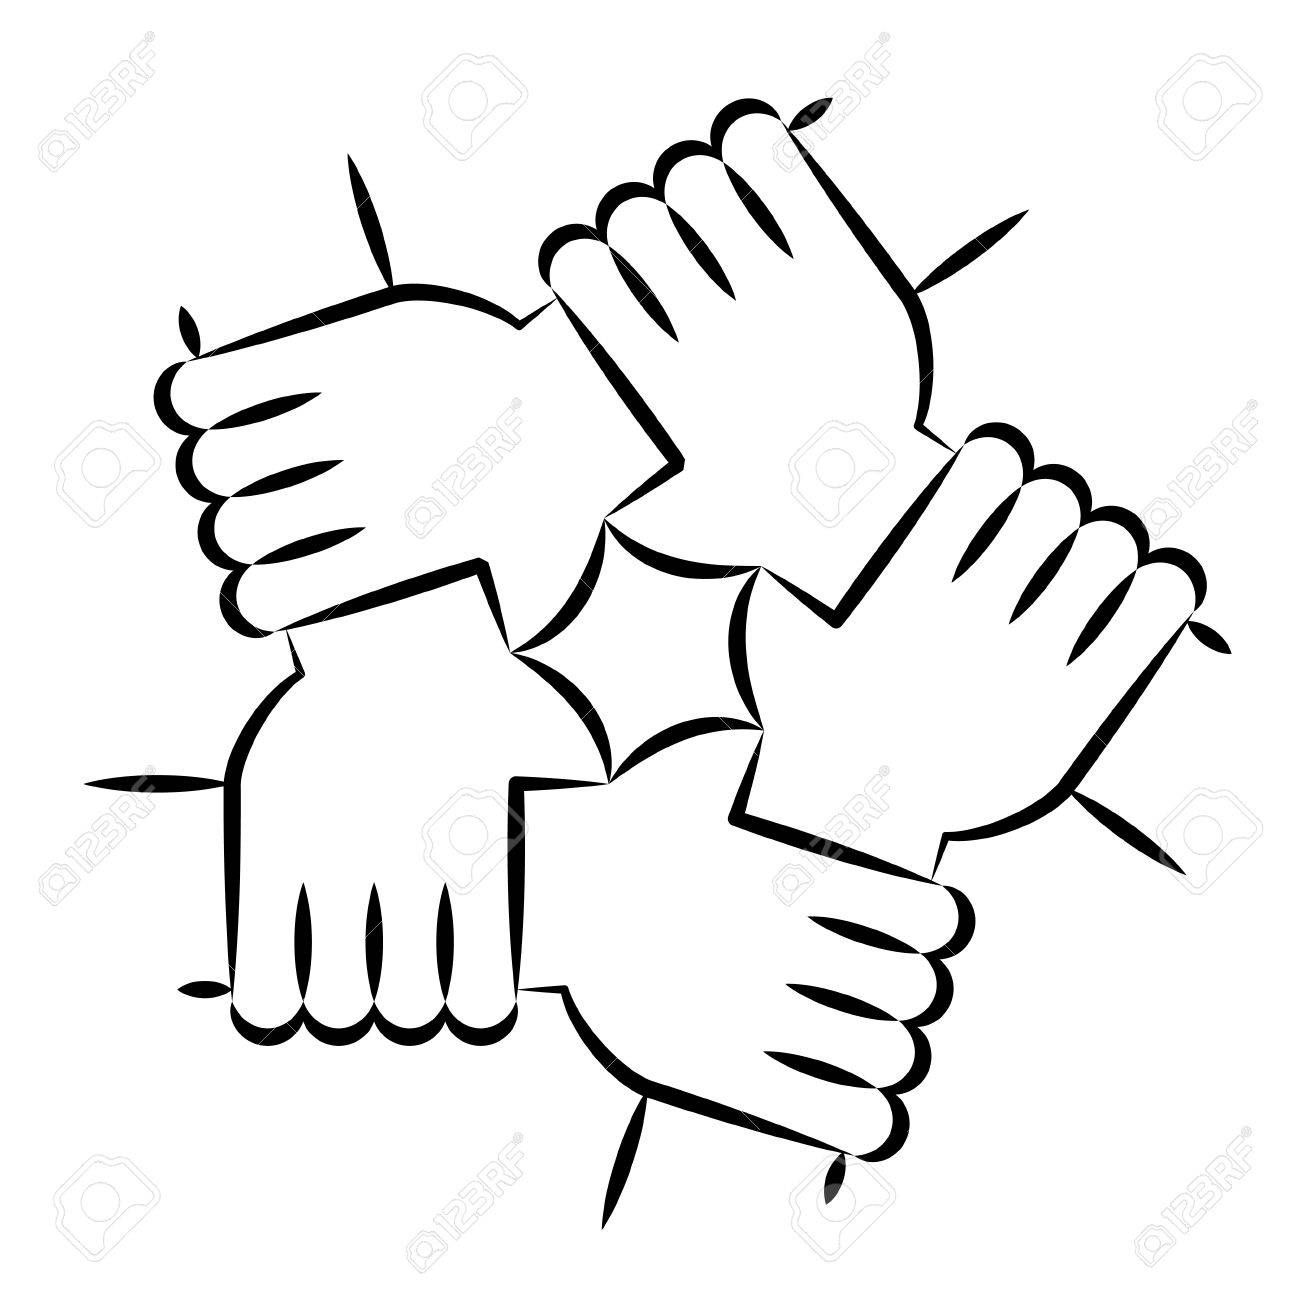 Vector Illustration Of Five Human Hands Holding Eachother For Solidarity And Unity Spon Hum Solidarity Illustration Free Stencils Printables Unity Drawing